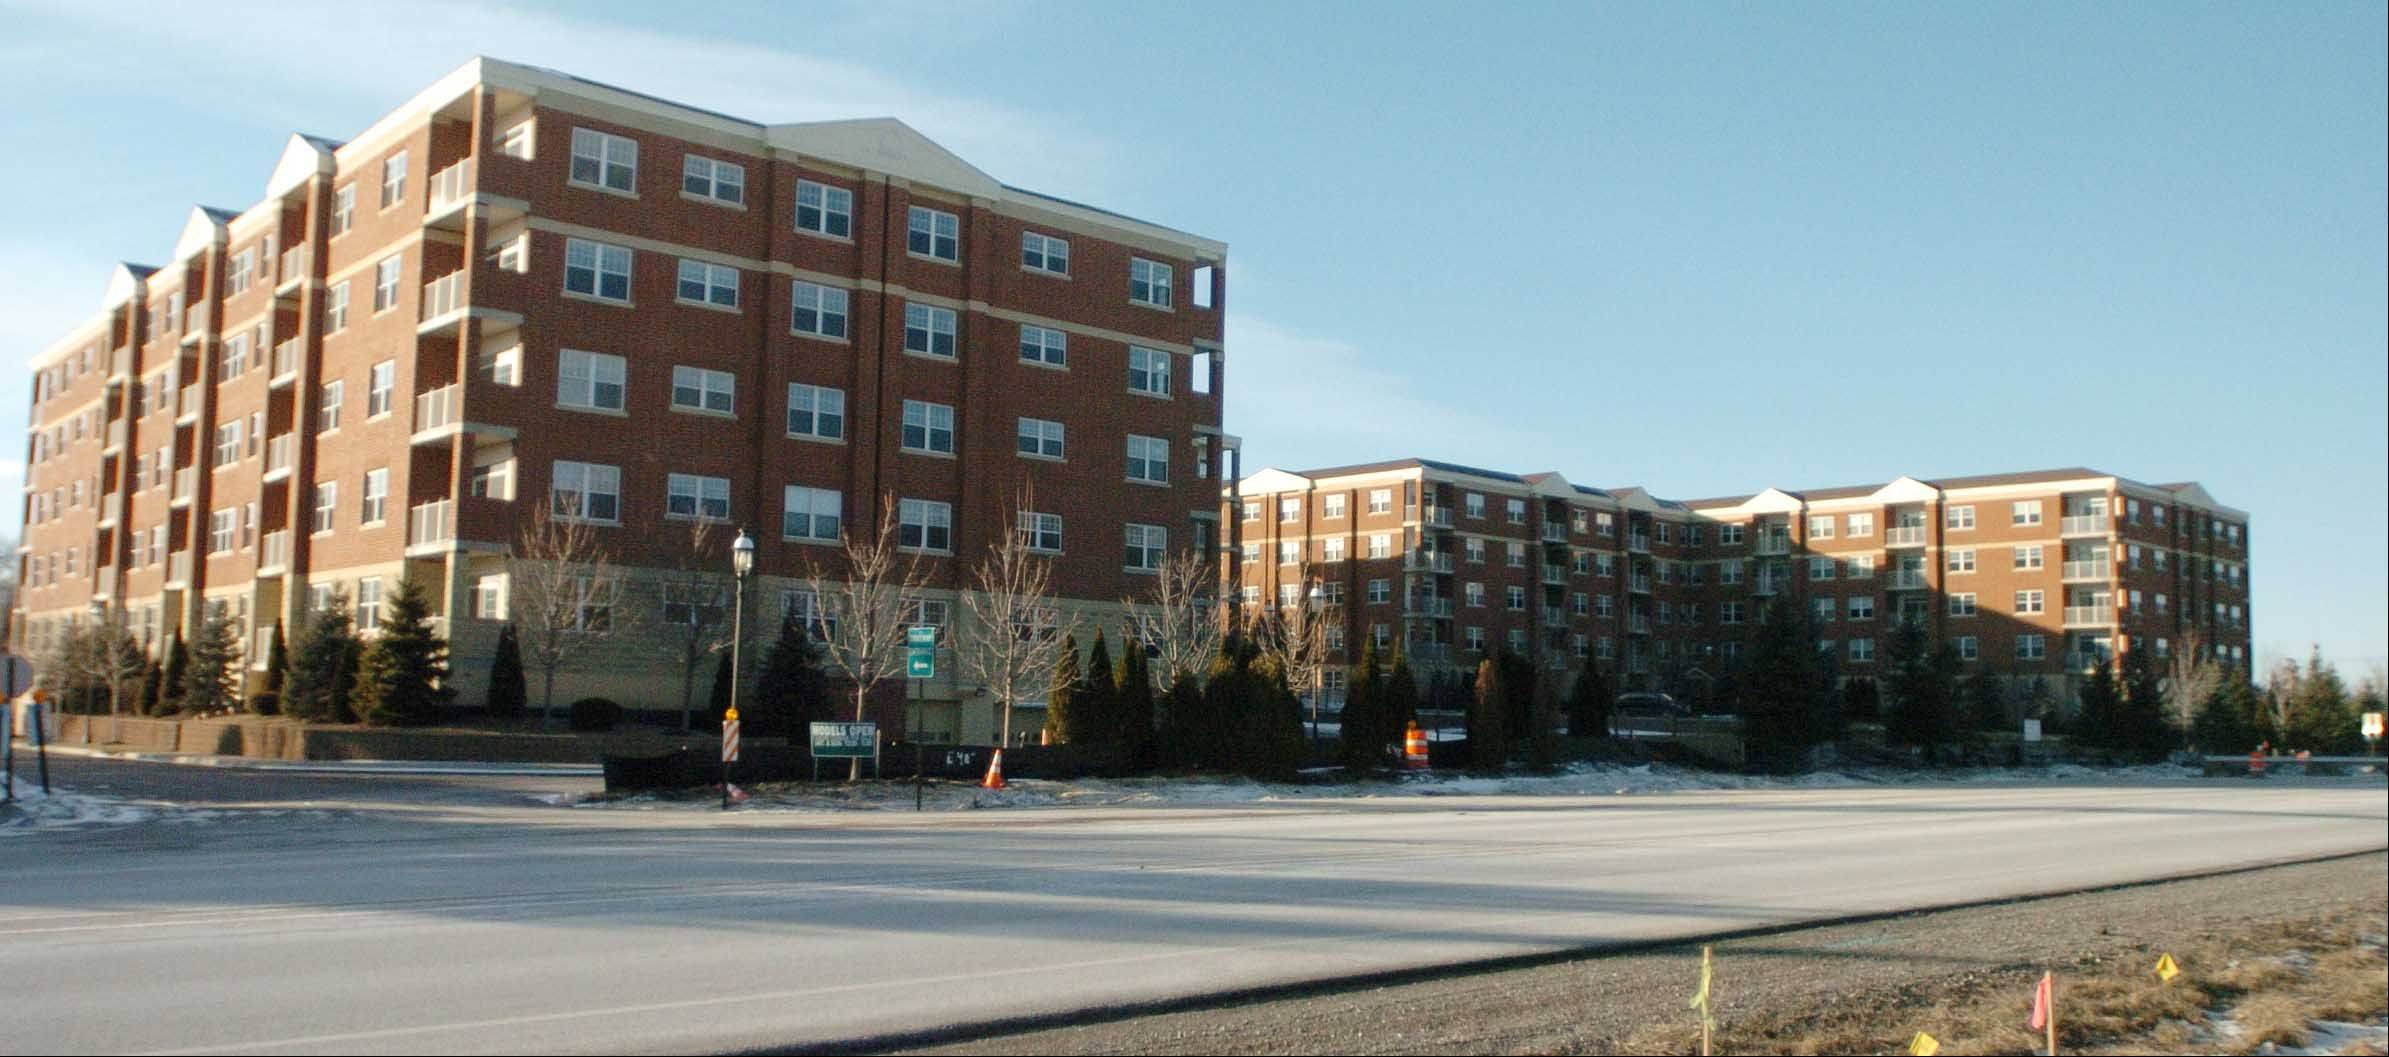 Itasca officials have approved a measure that will convert the mostly vacant building at 2 Itasca Place, at the intersection of Nordic and Rohlwing roads, from condos into apartment units. The building next door is mostly occupied and will remain condos.